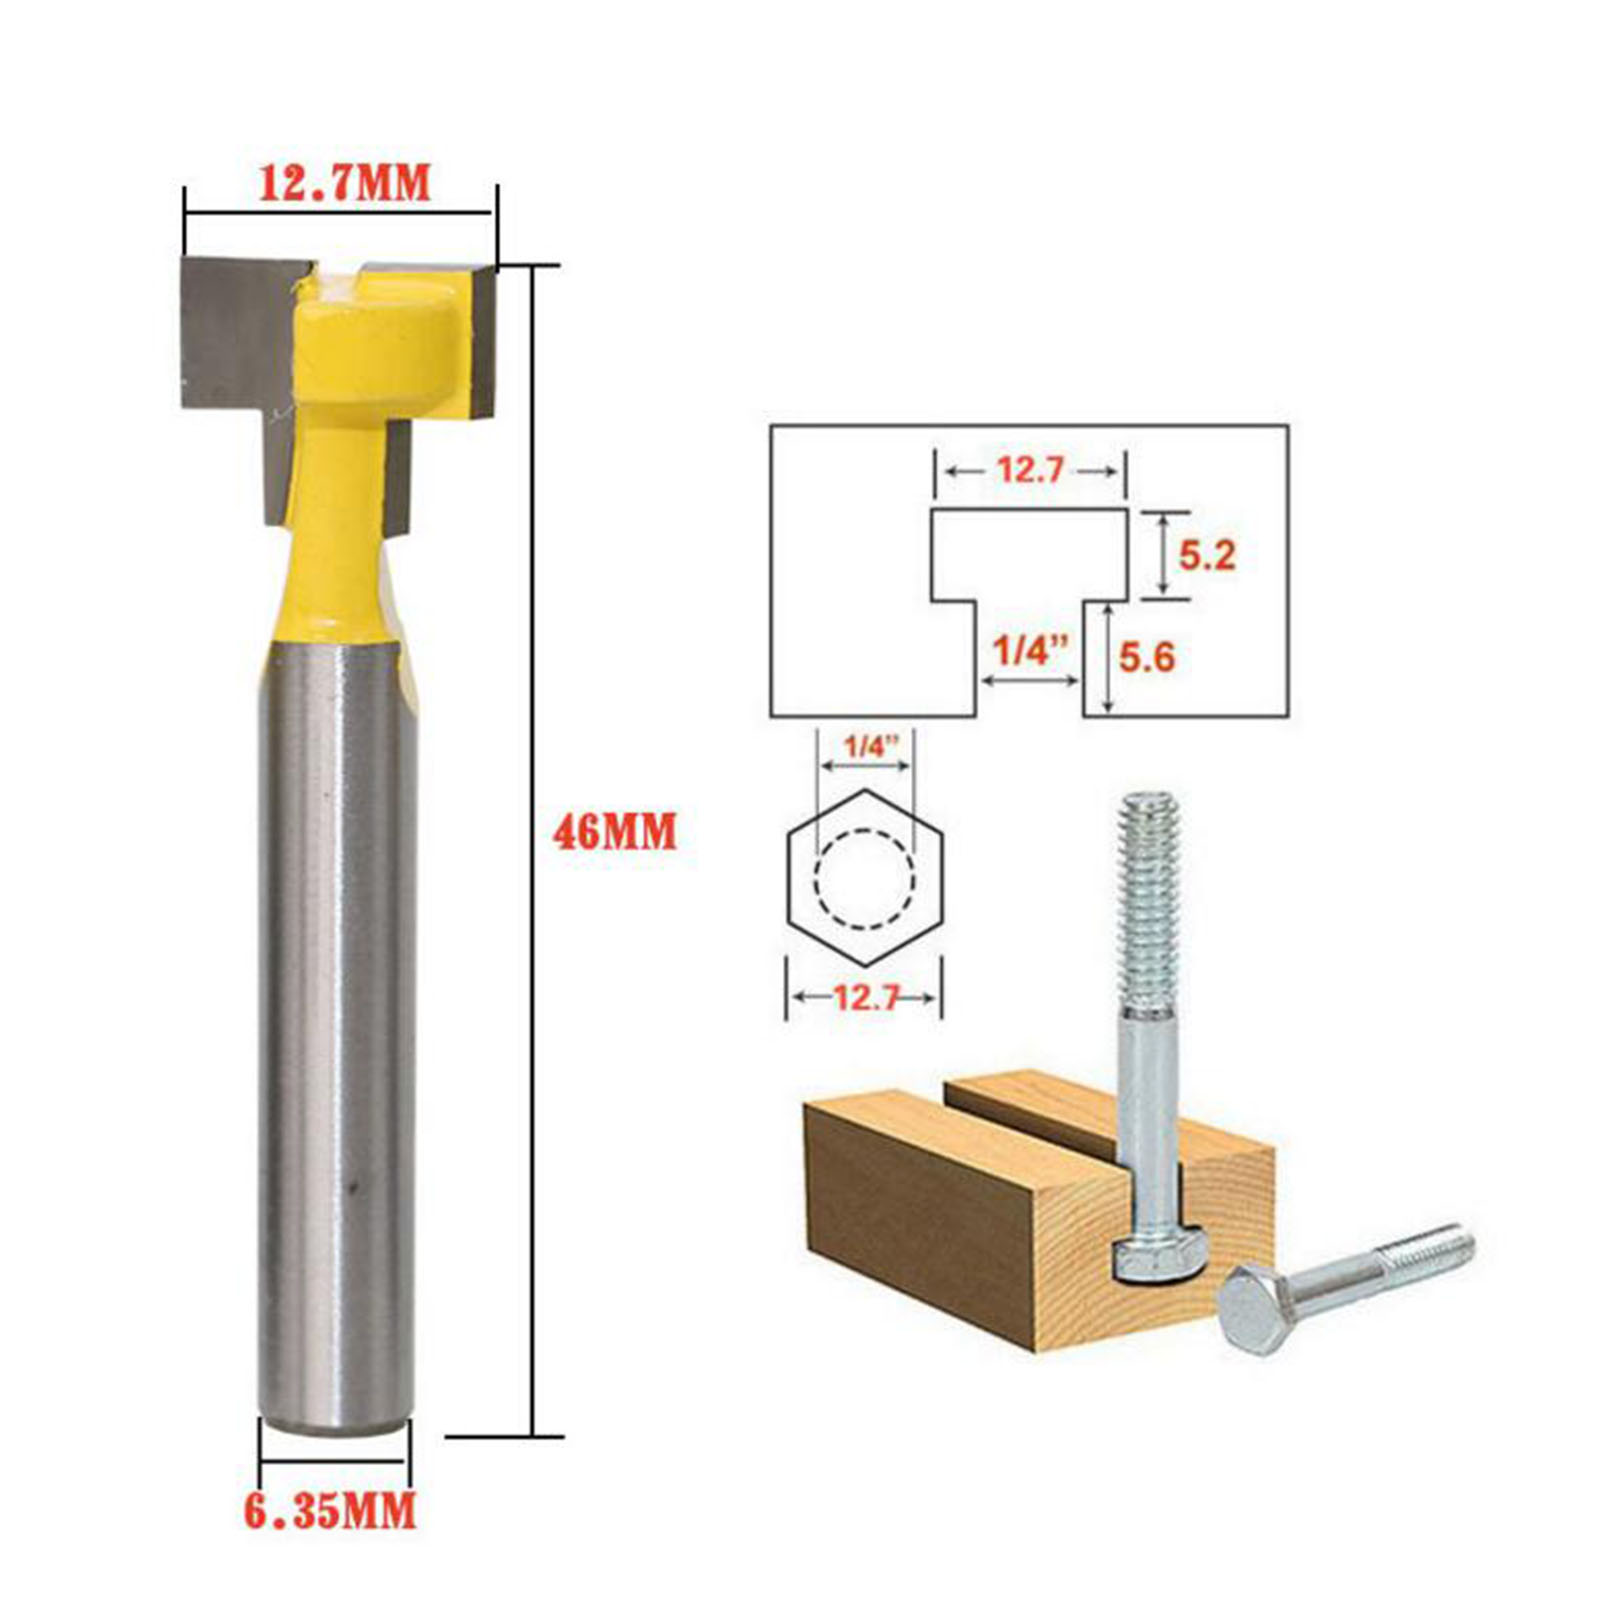 DRELD 1pc Woodworking Tool 1/4 Inch Shank Carbide T Slot Lock Hole Cutter Router Bit Wood Milling Cutter Tool 1/2inch Diameter